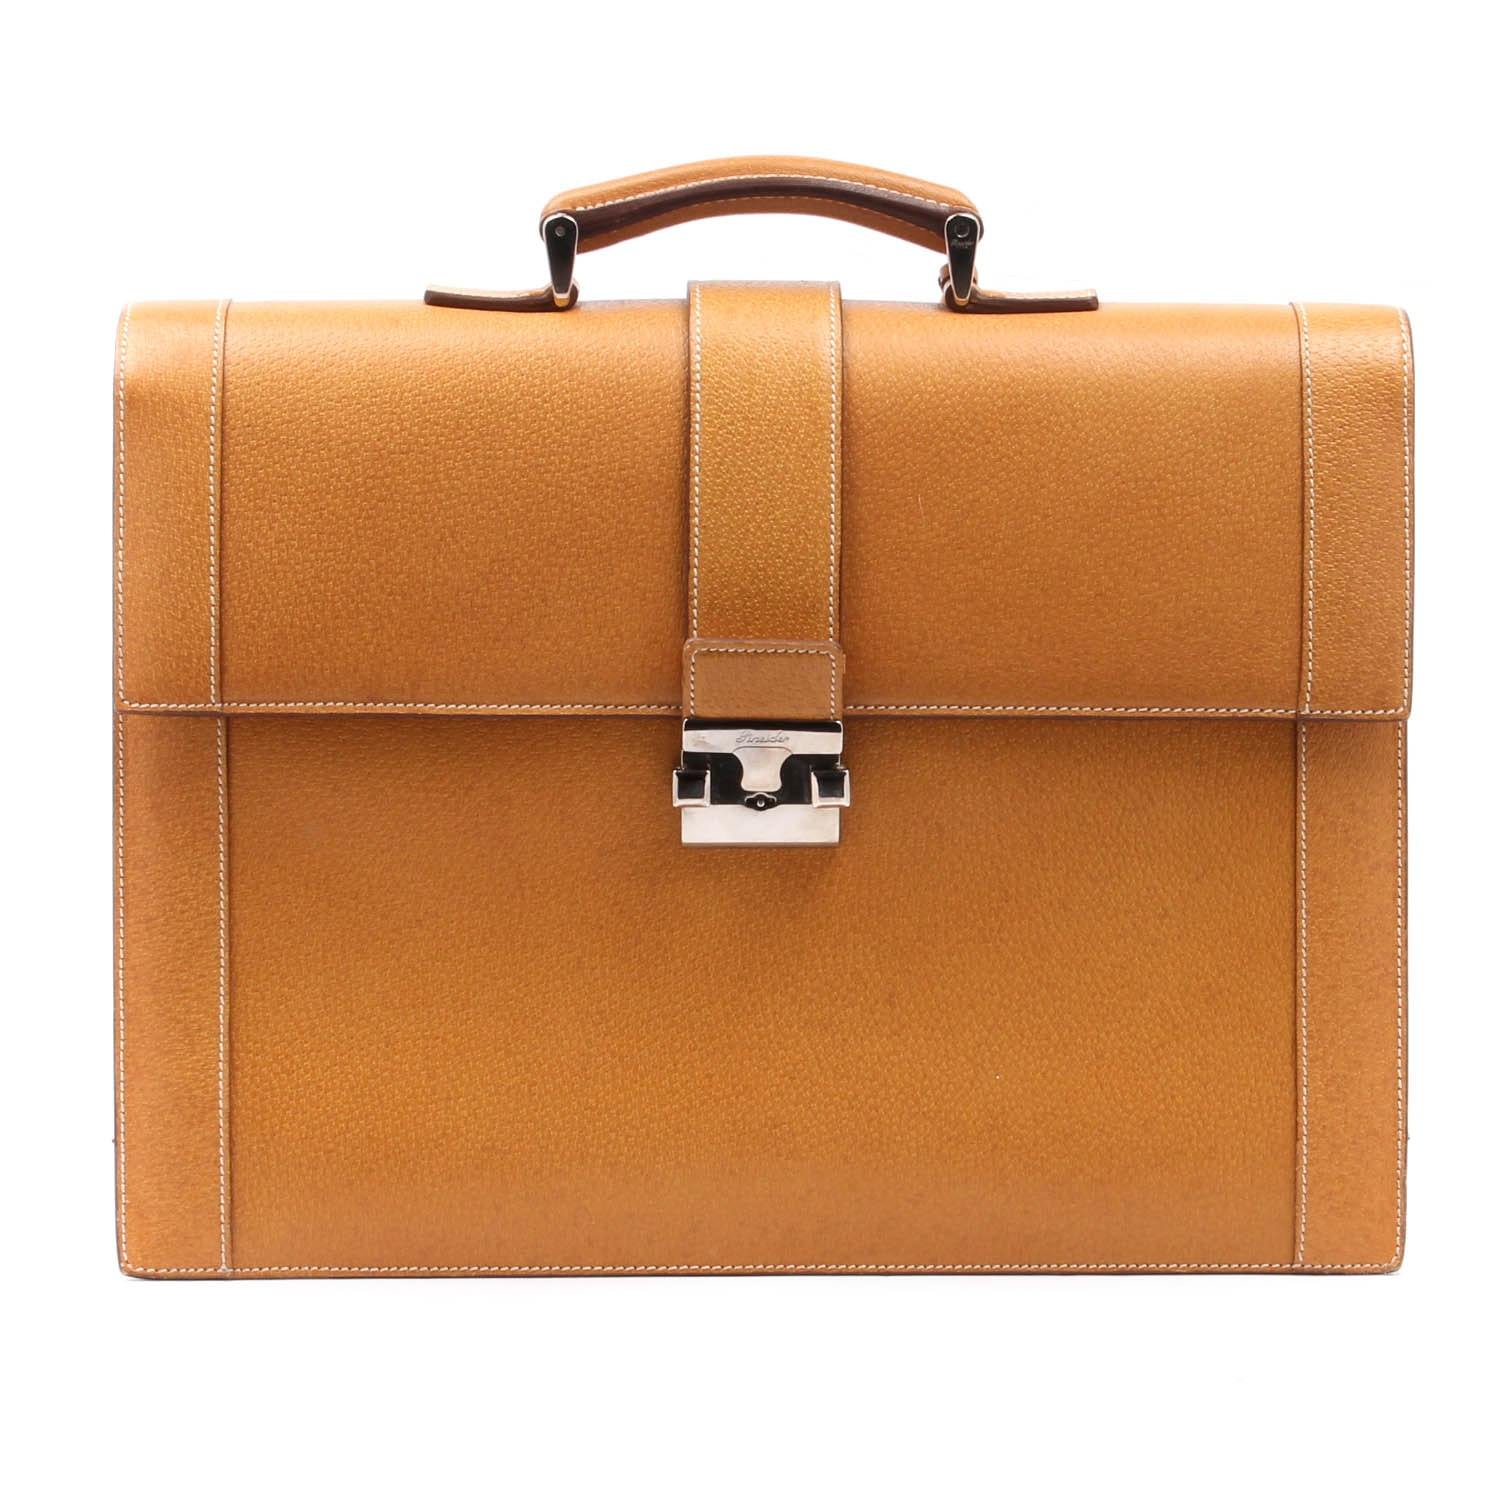 Pineider Italian Leather Briefcase